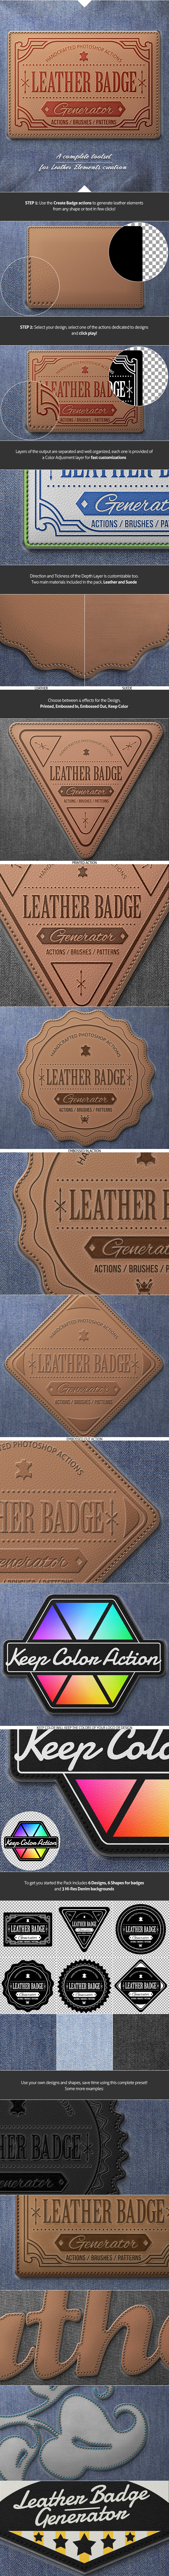 Leather Badge Generator Photoshop Actions